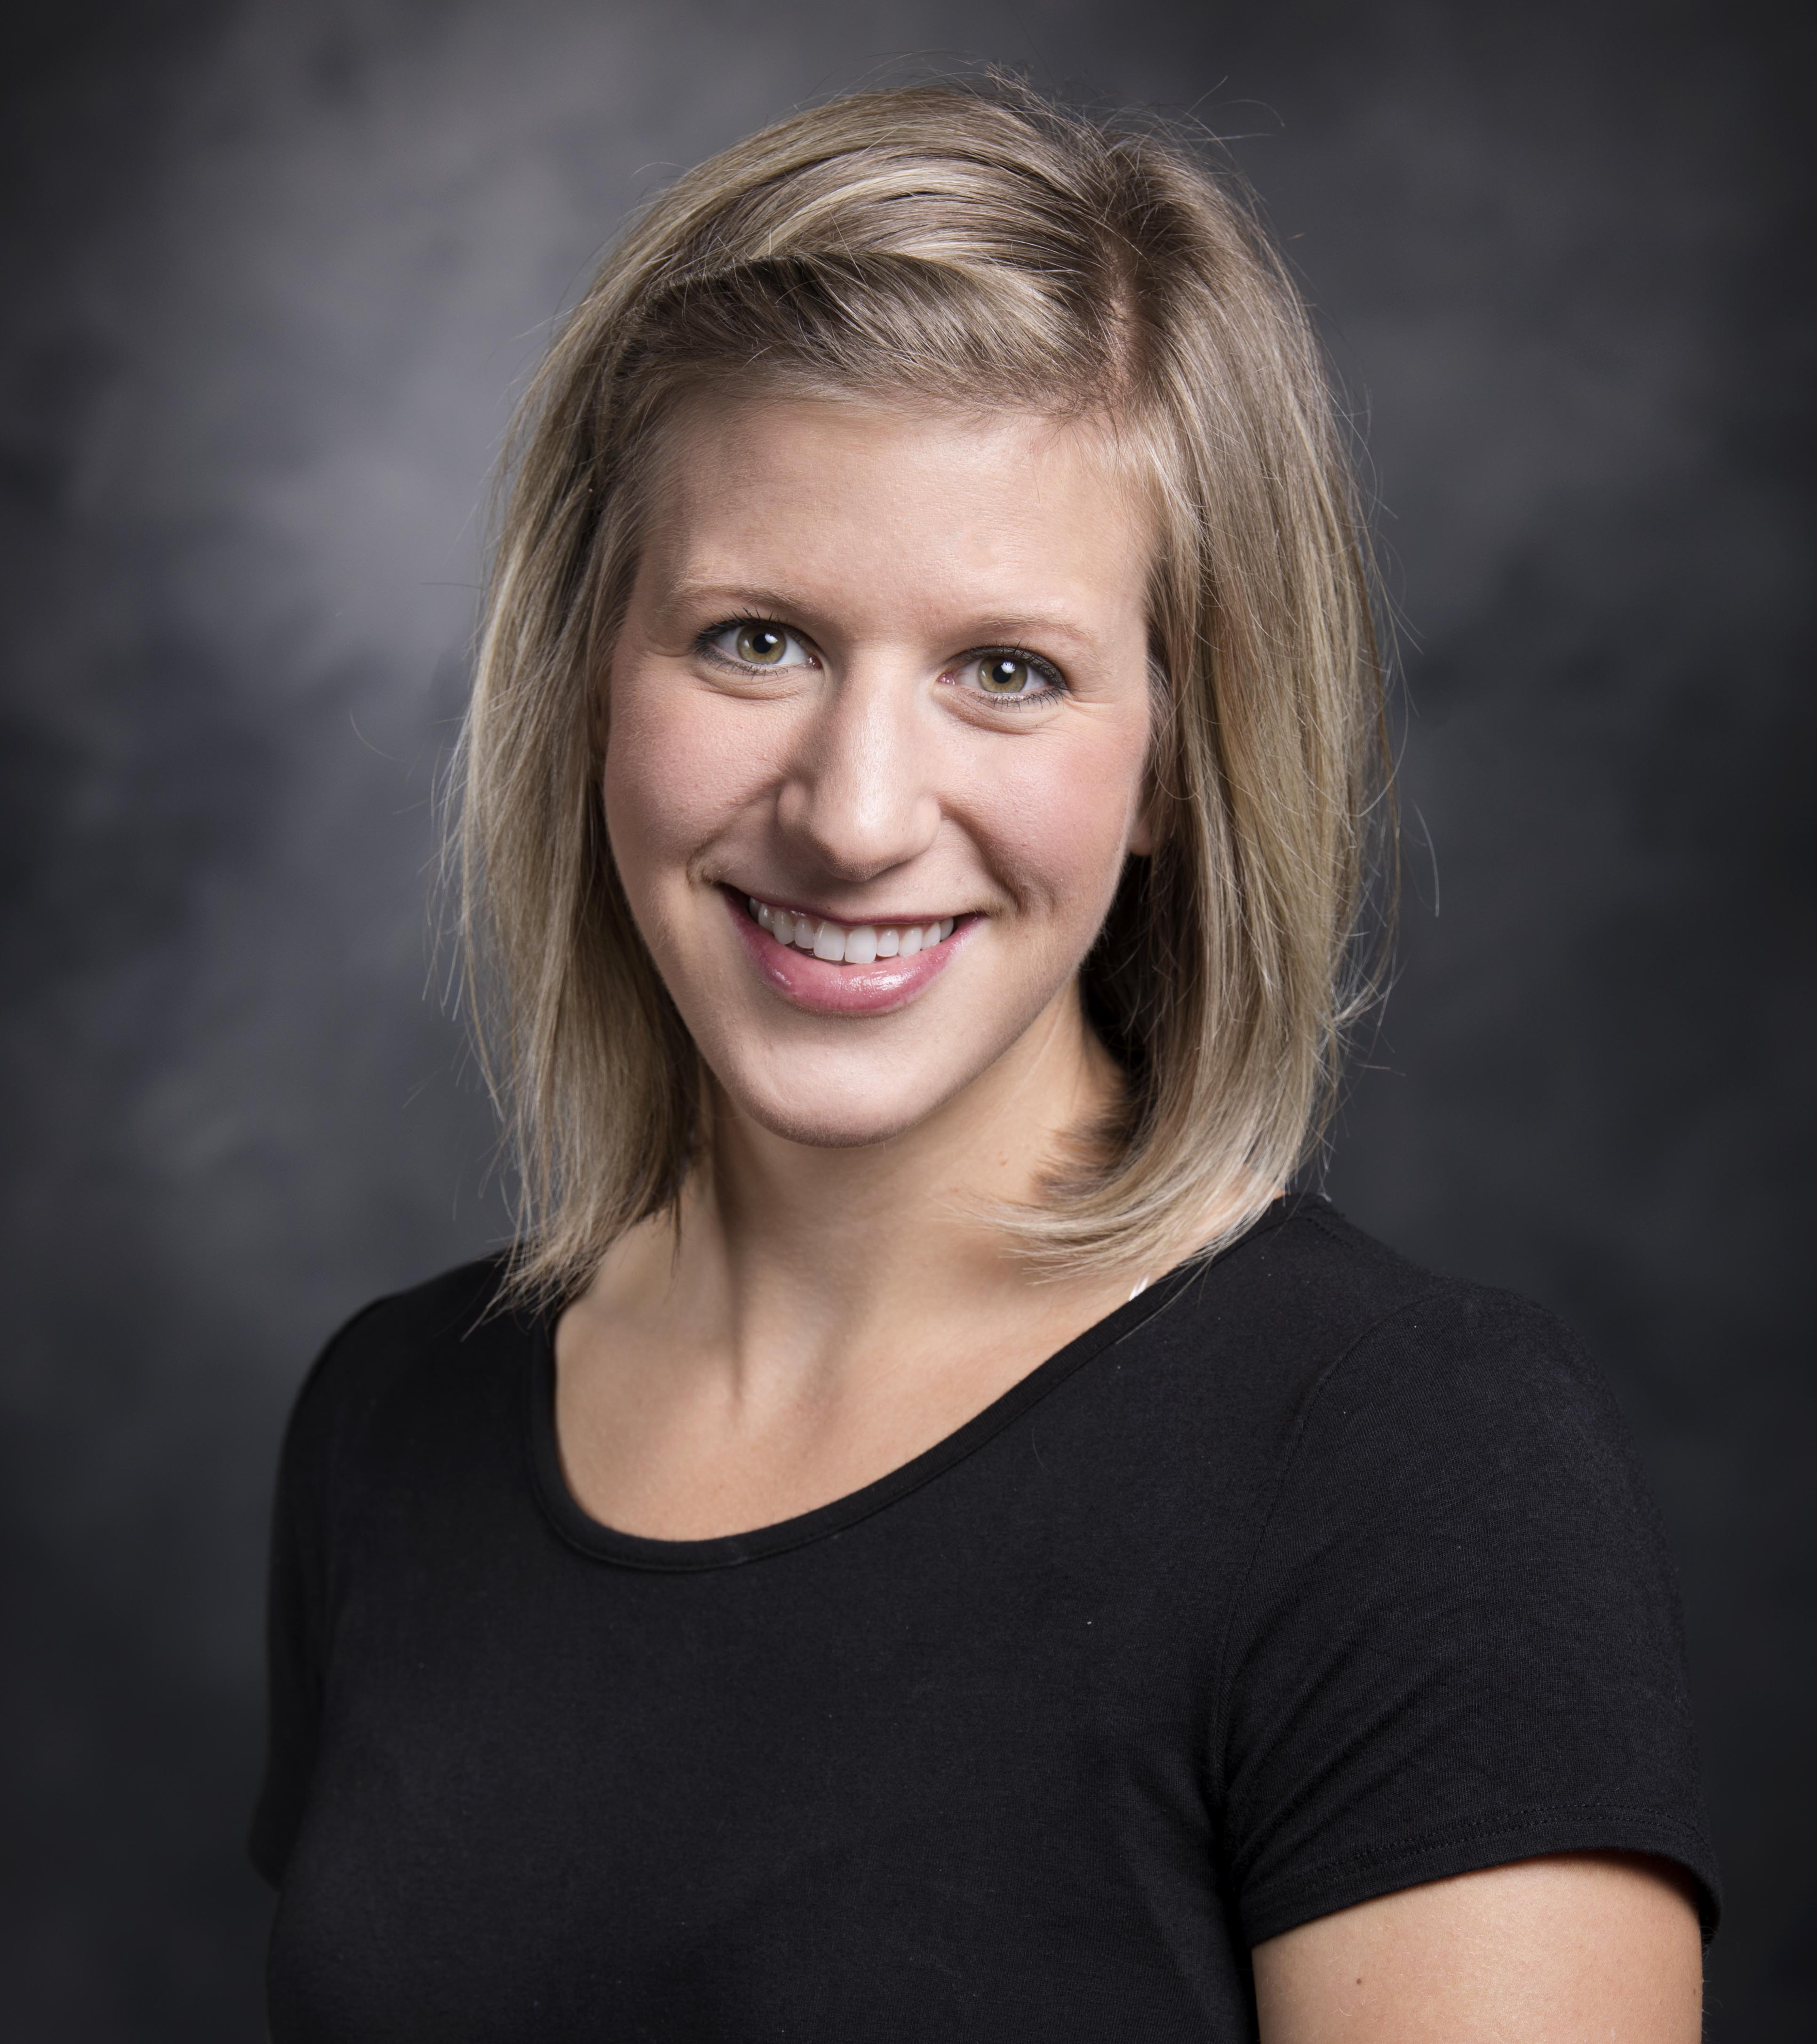 Photo of Jessica Aldridge, MS, RDN, LD